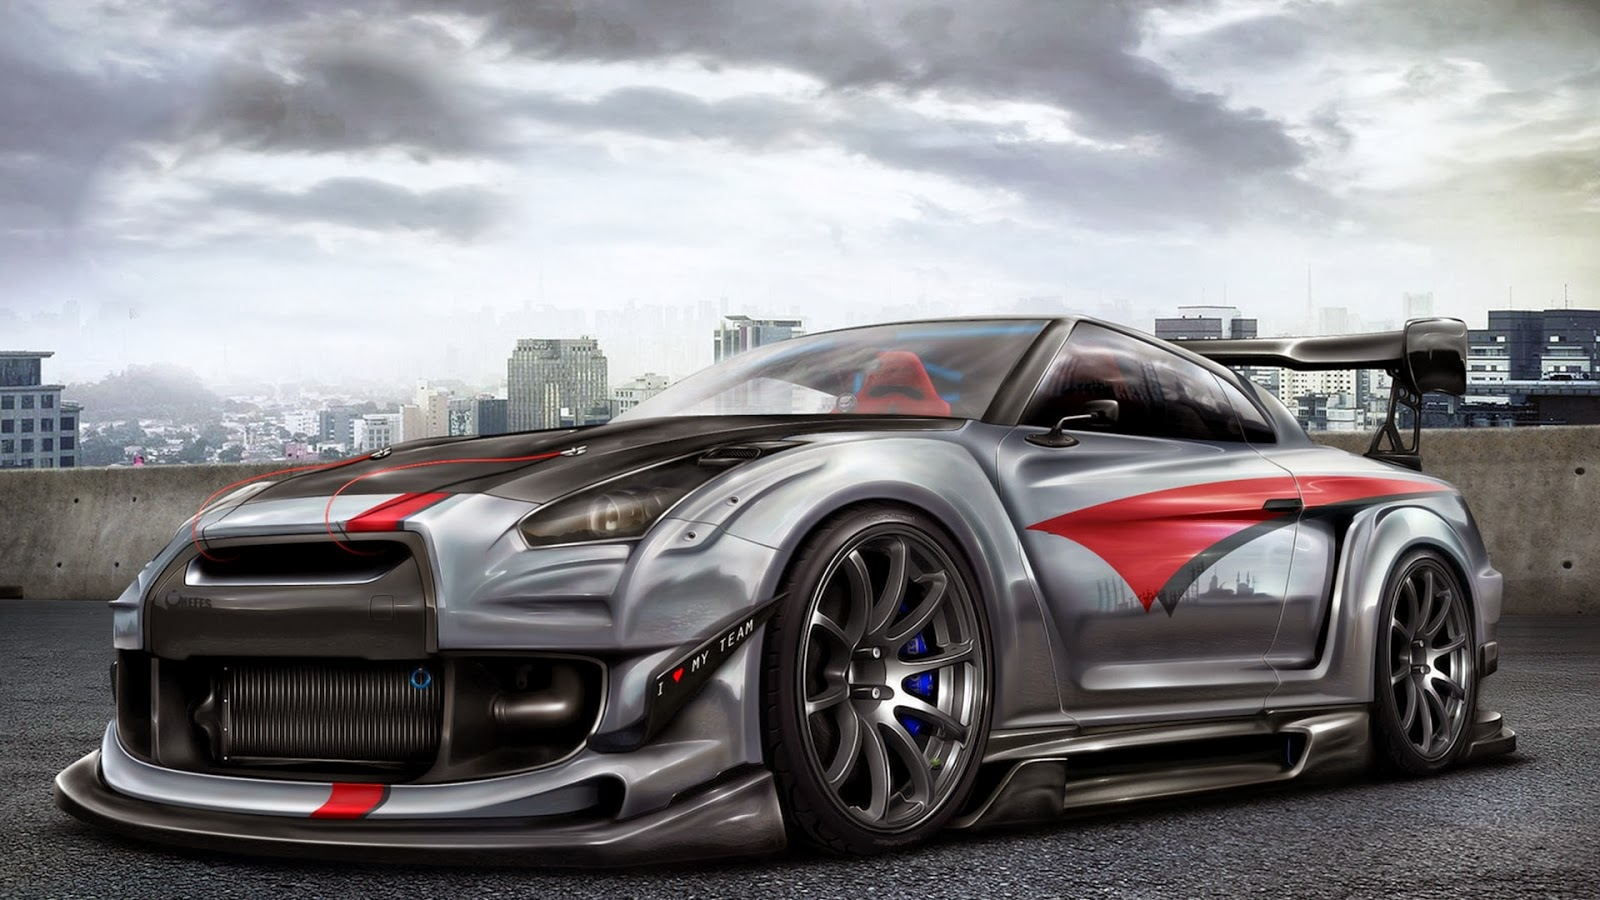 Nissan GTR | We Obsessively Cover the Auto Industry